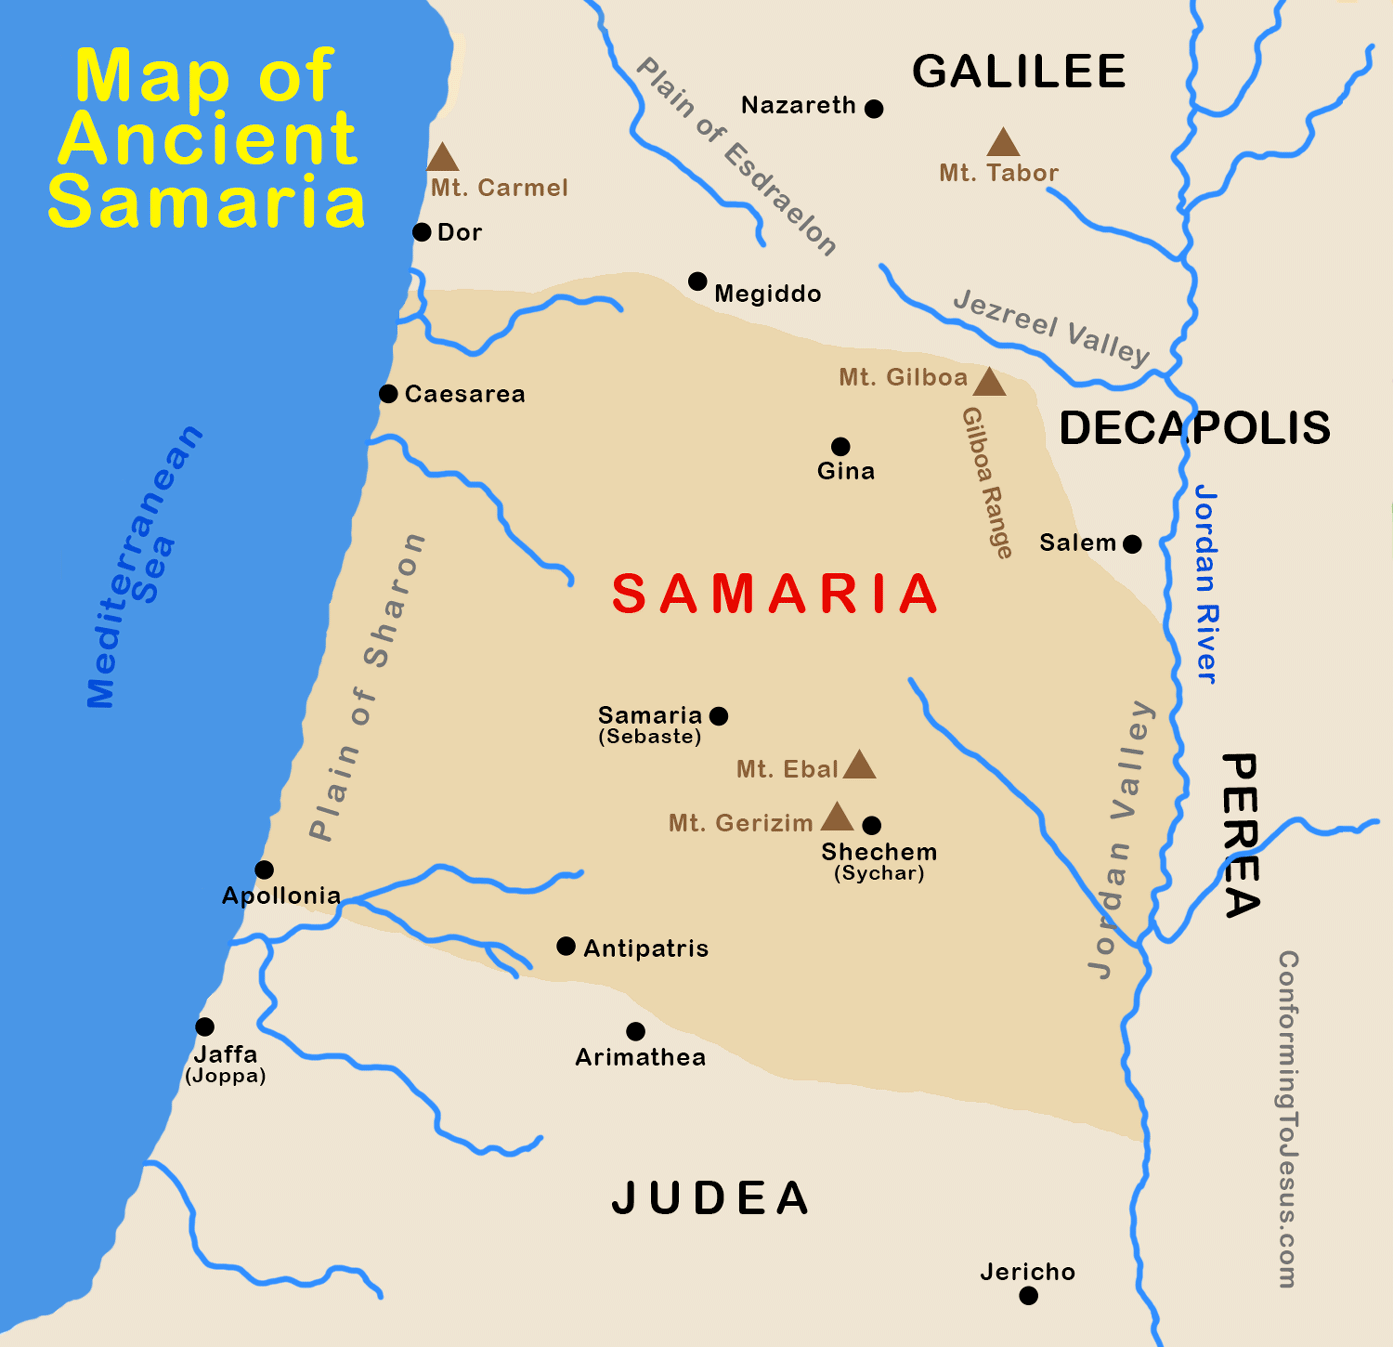 Map of Ancient Roman Samaria - Map of Samaria at the time of Jesus Decapolis Map on